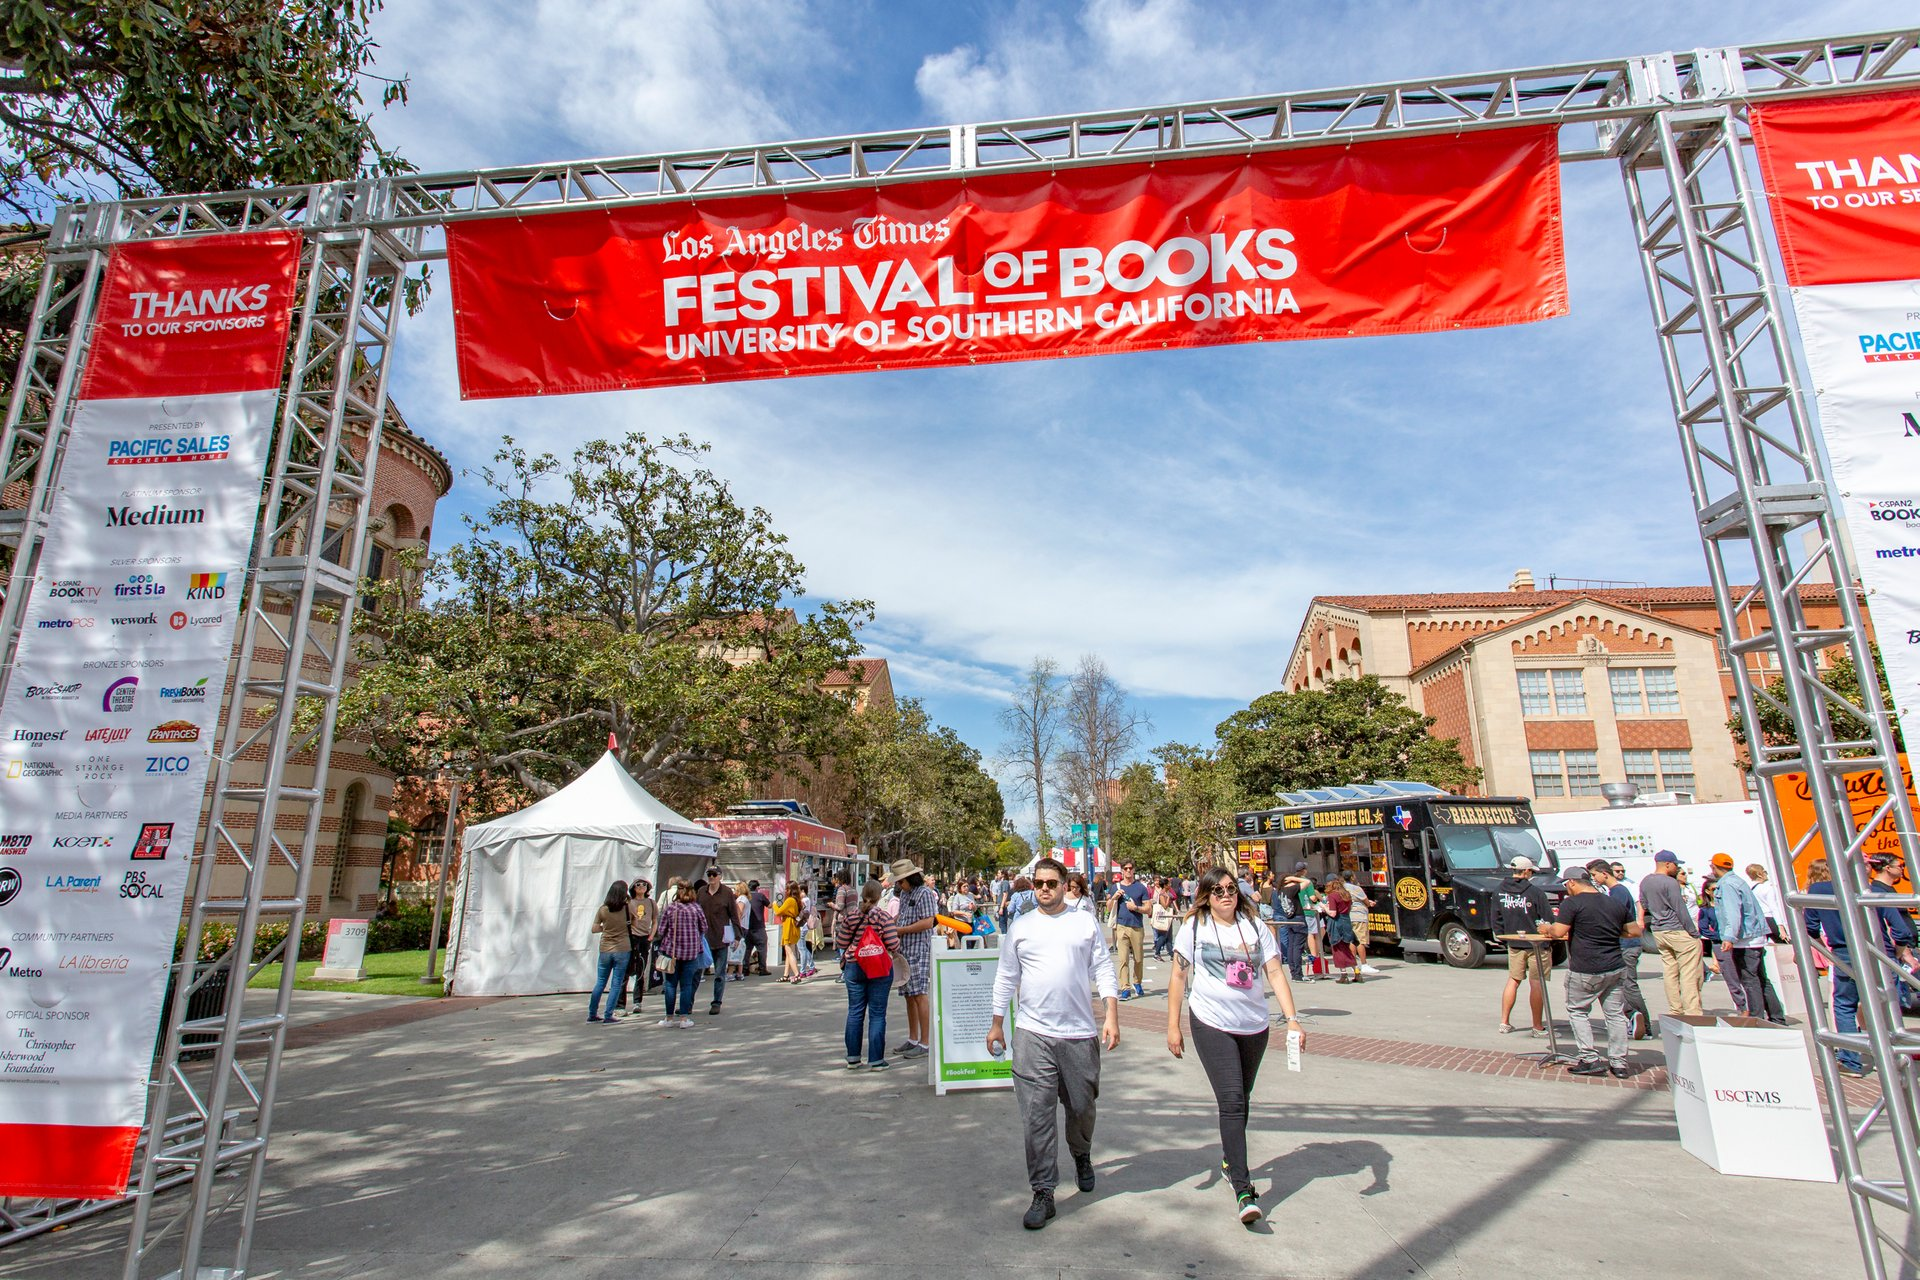 Los Angeles Times Festival of Books in Los Angeles - Best Time